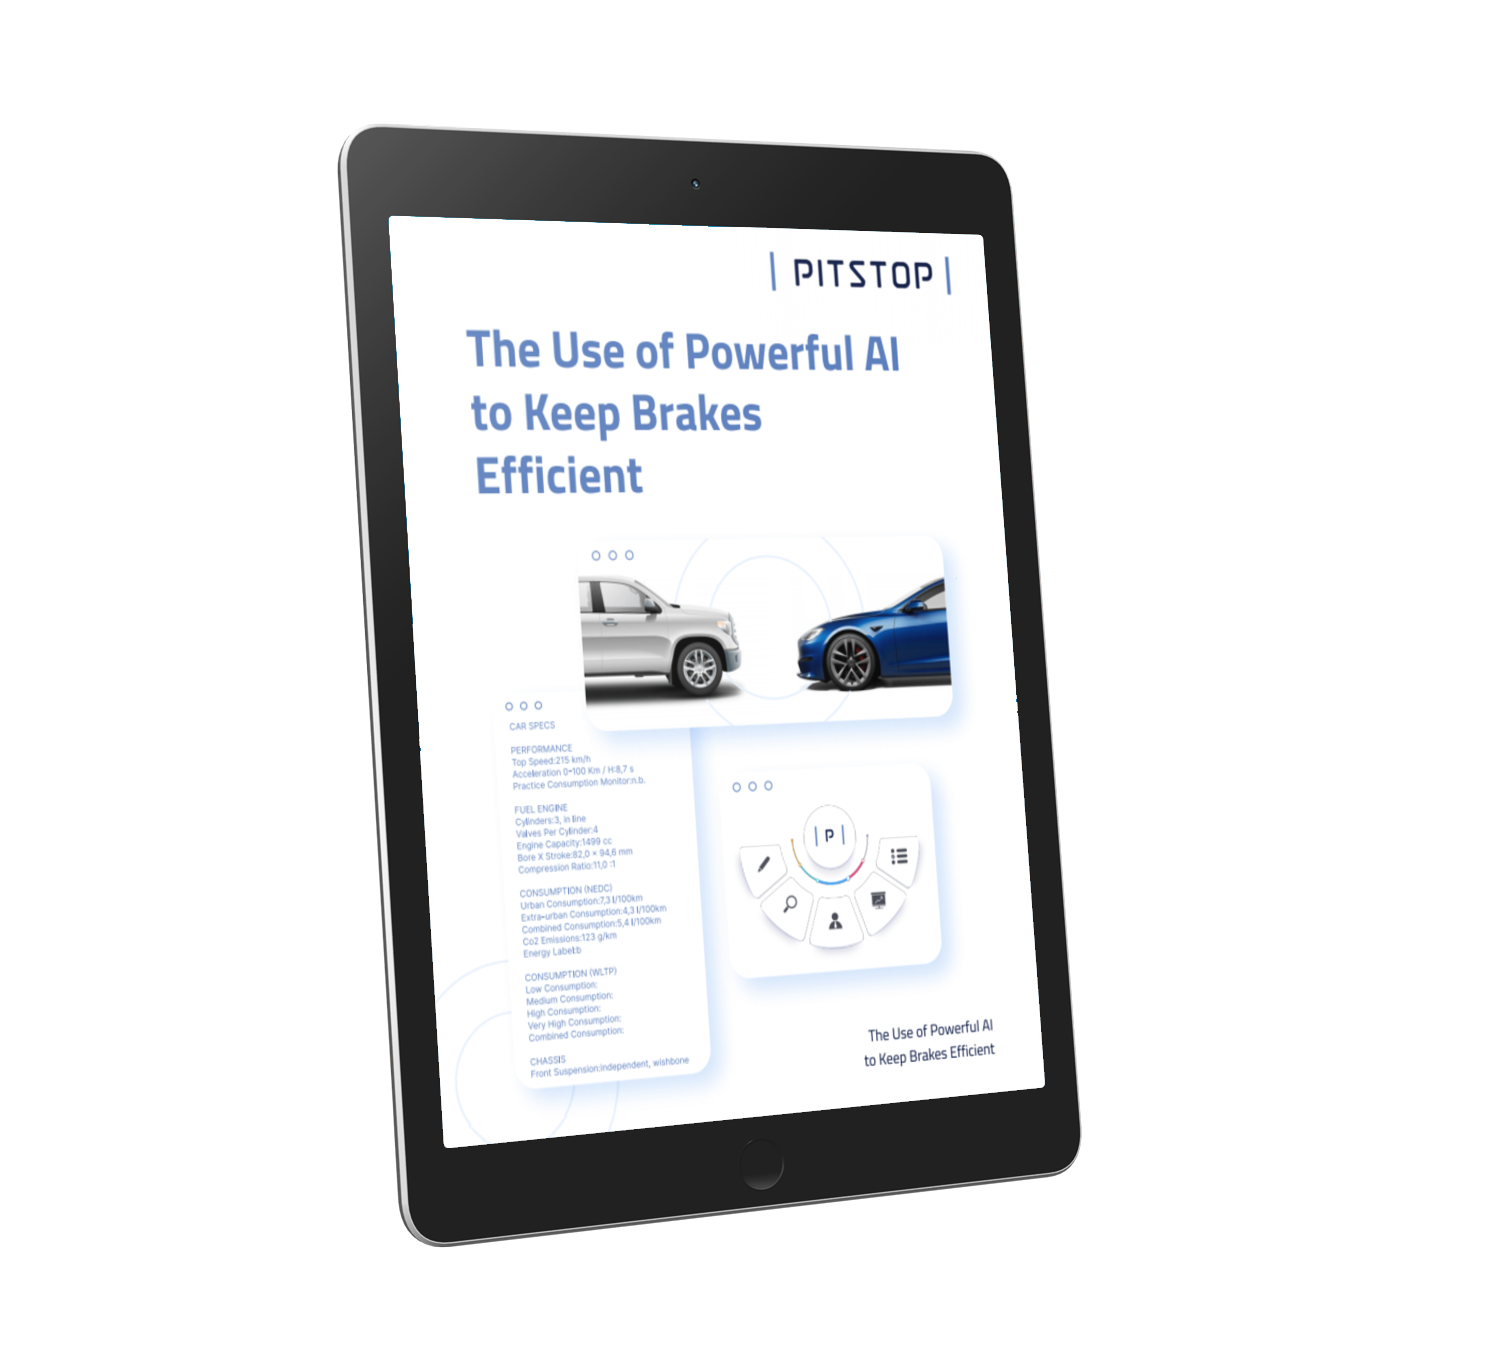 Learn how advanced AI technology is driving value and keeping the roads safer with an intelligent brake model